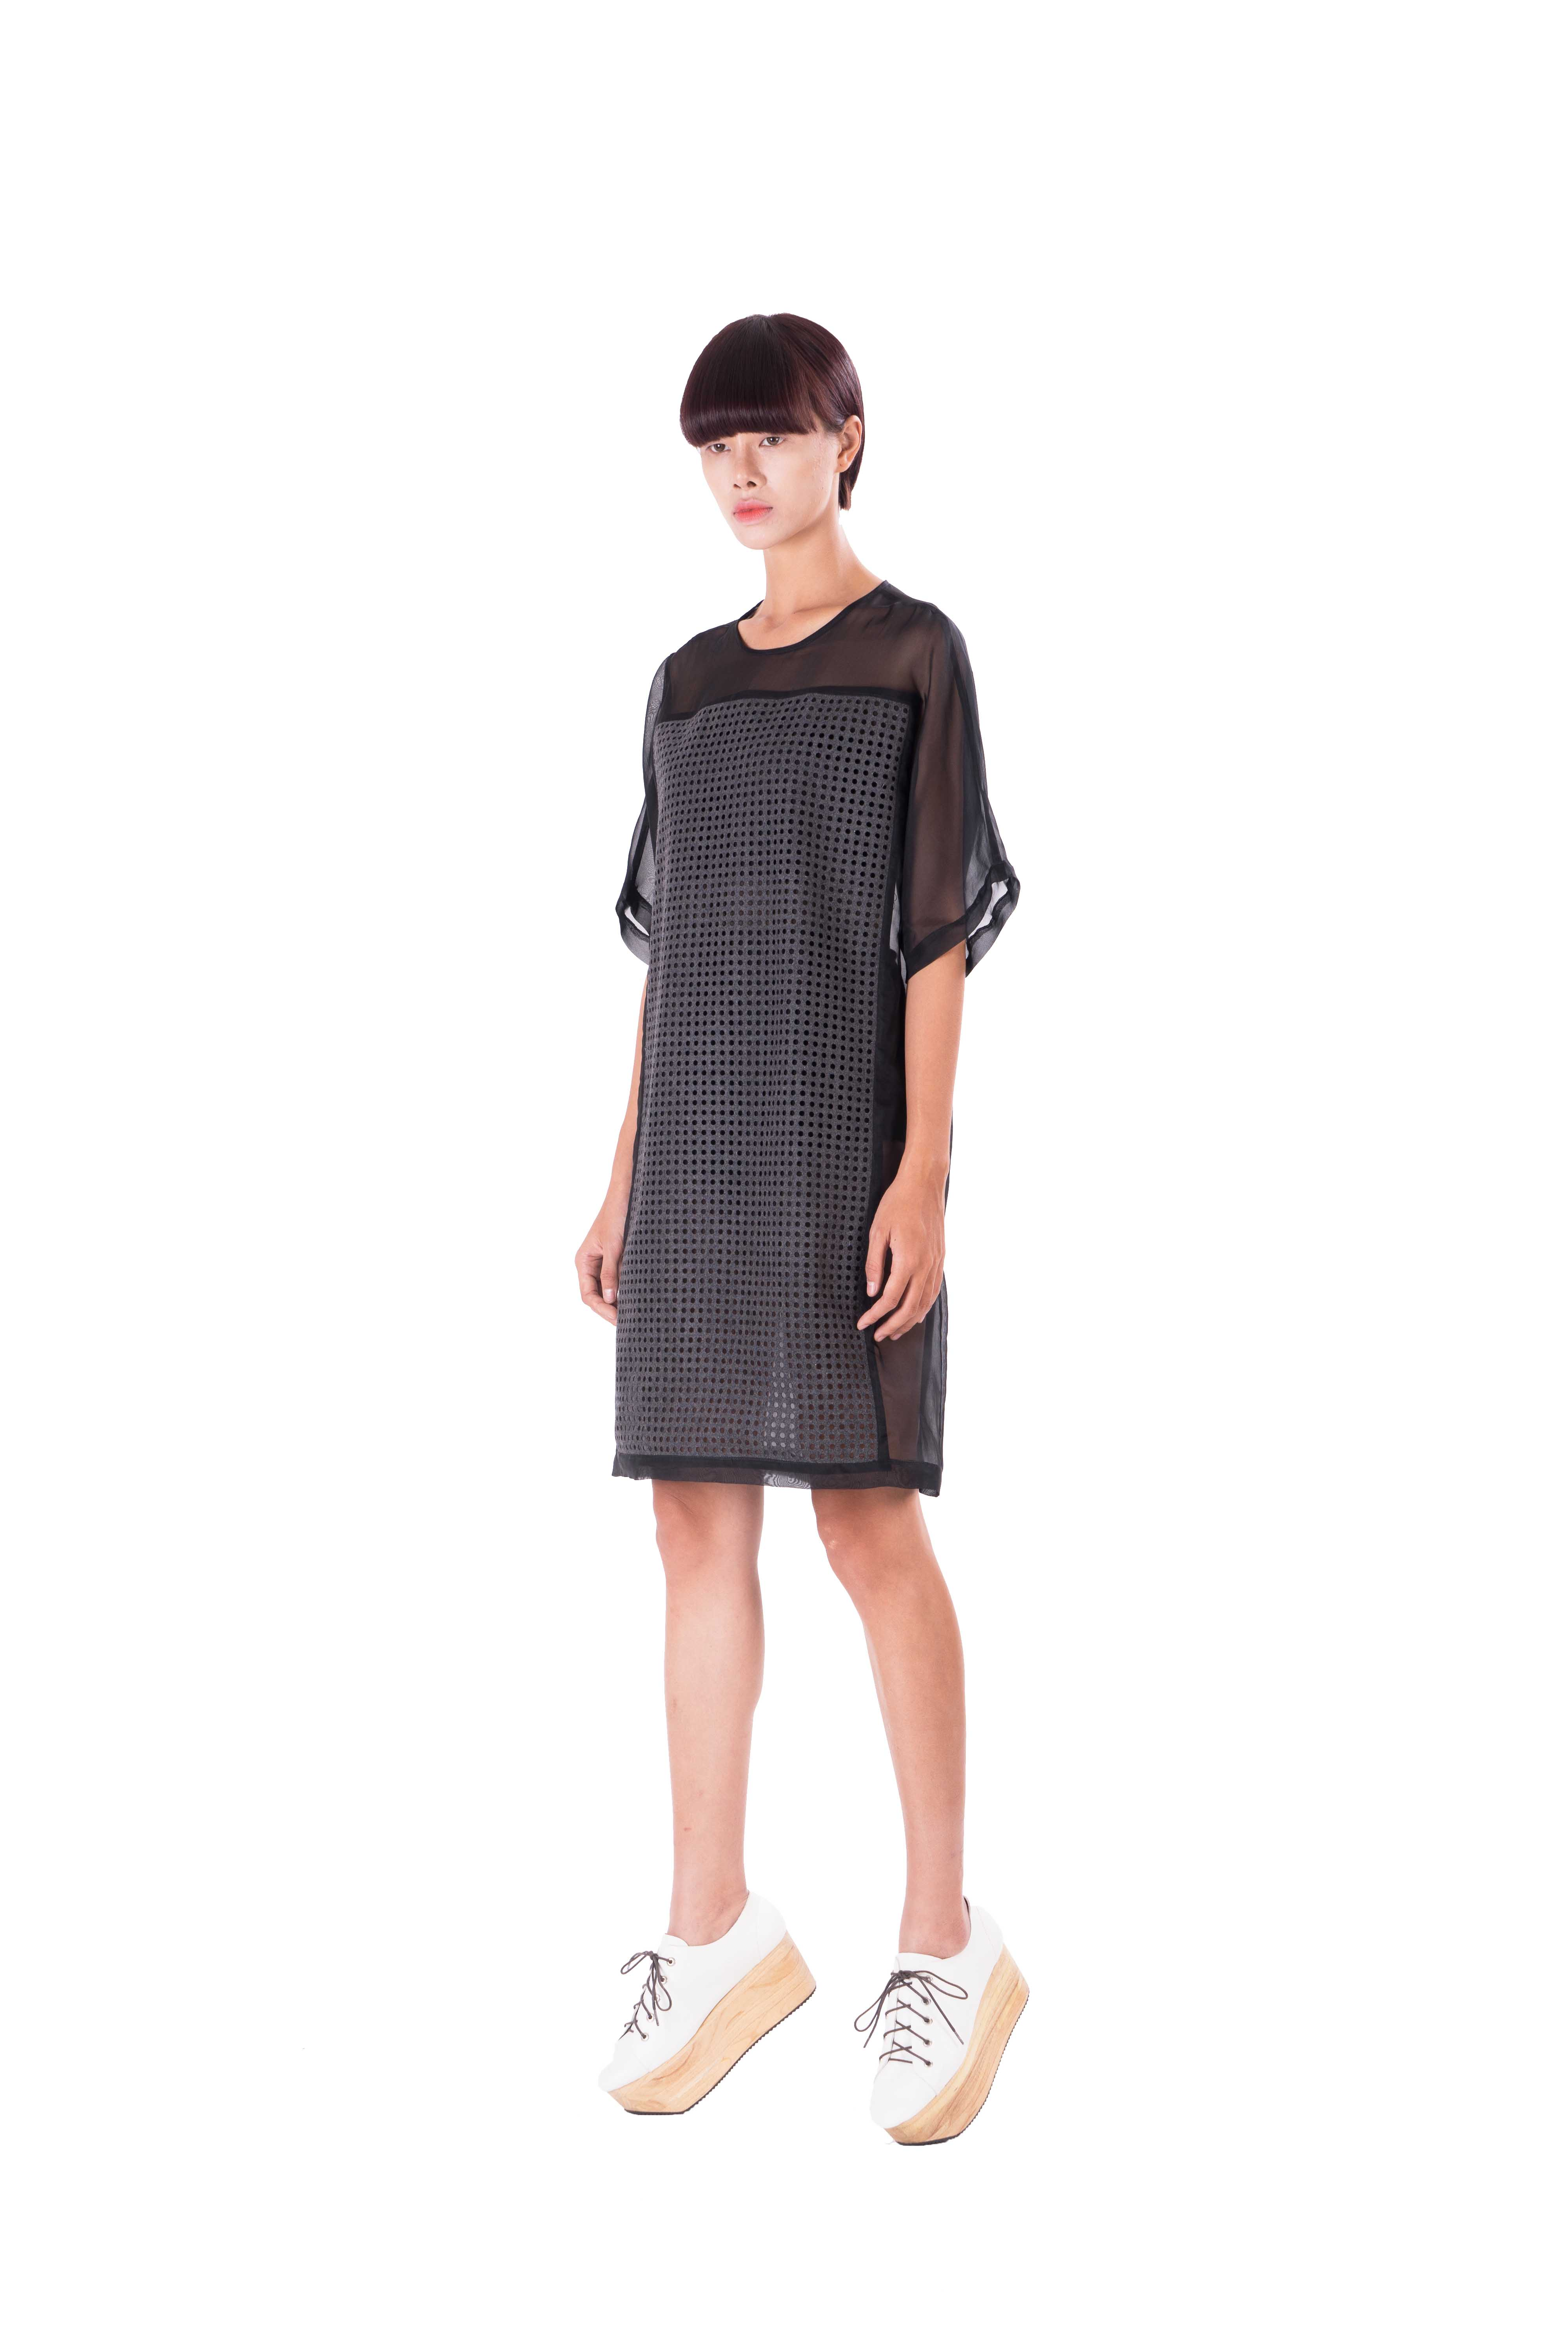 Boxy style dress organza and wool blend